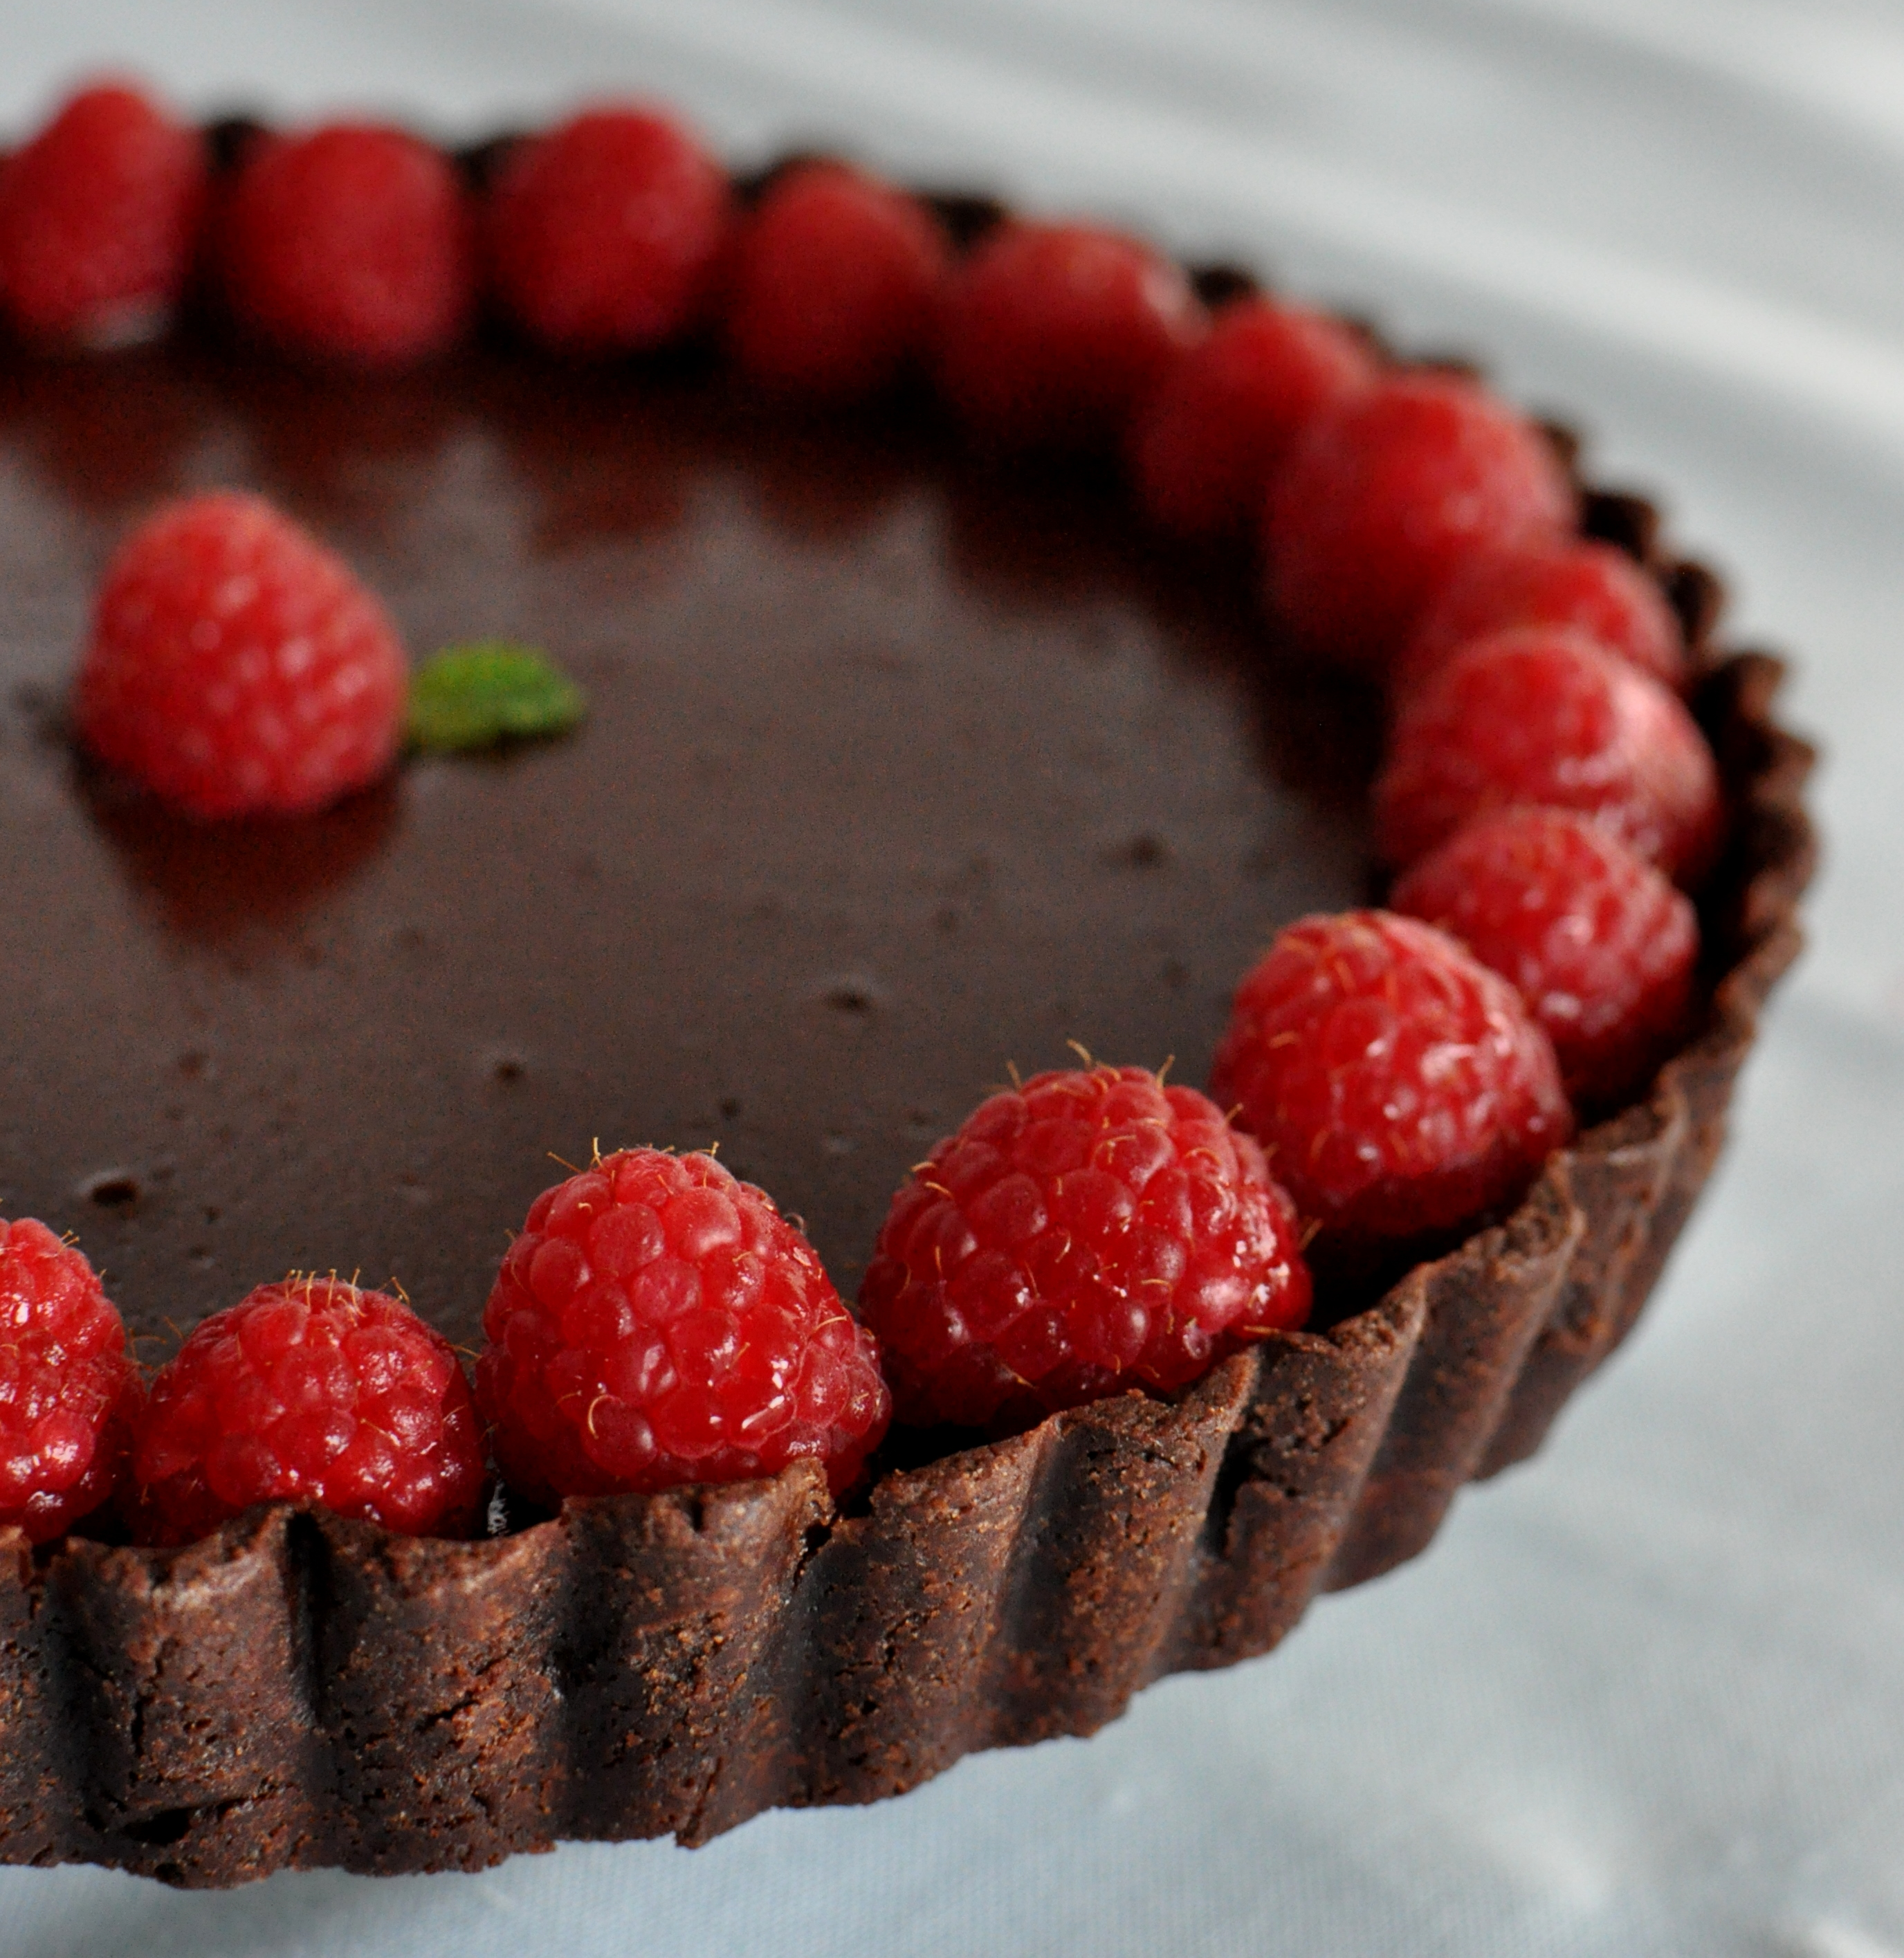 Long Awaited: Double Chocolate Tart - Get Fresh with Food